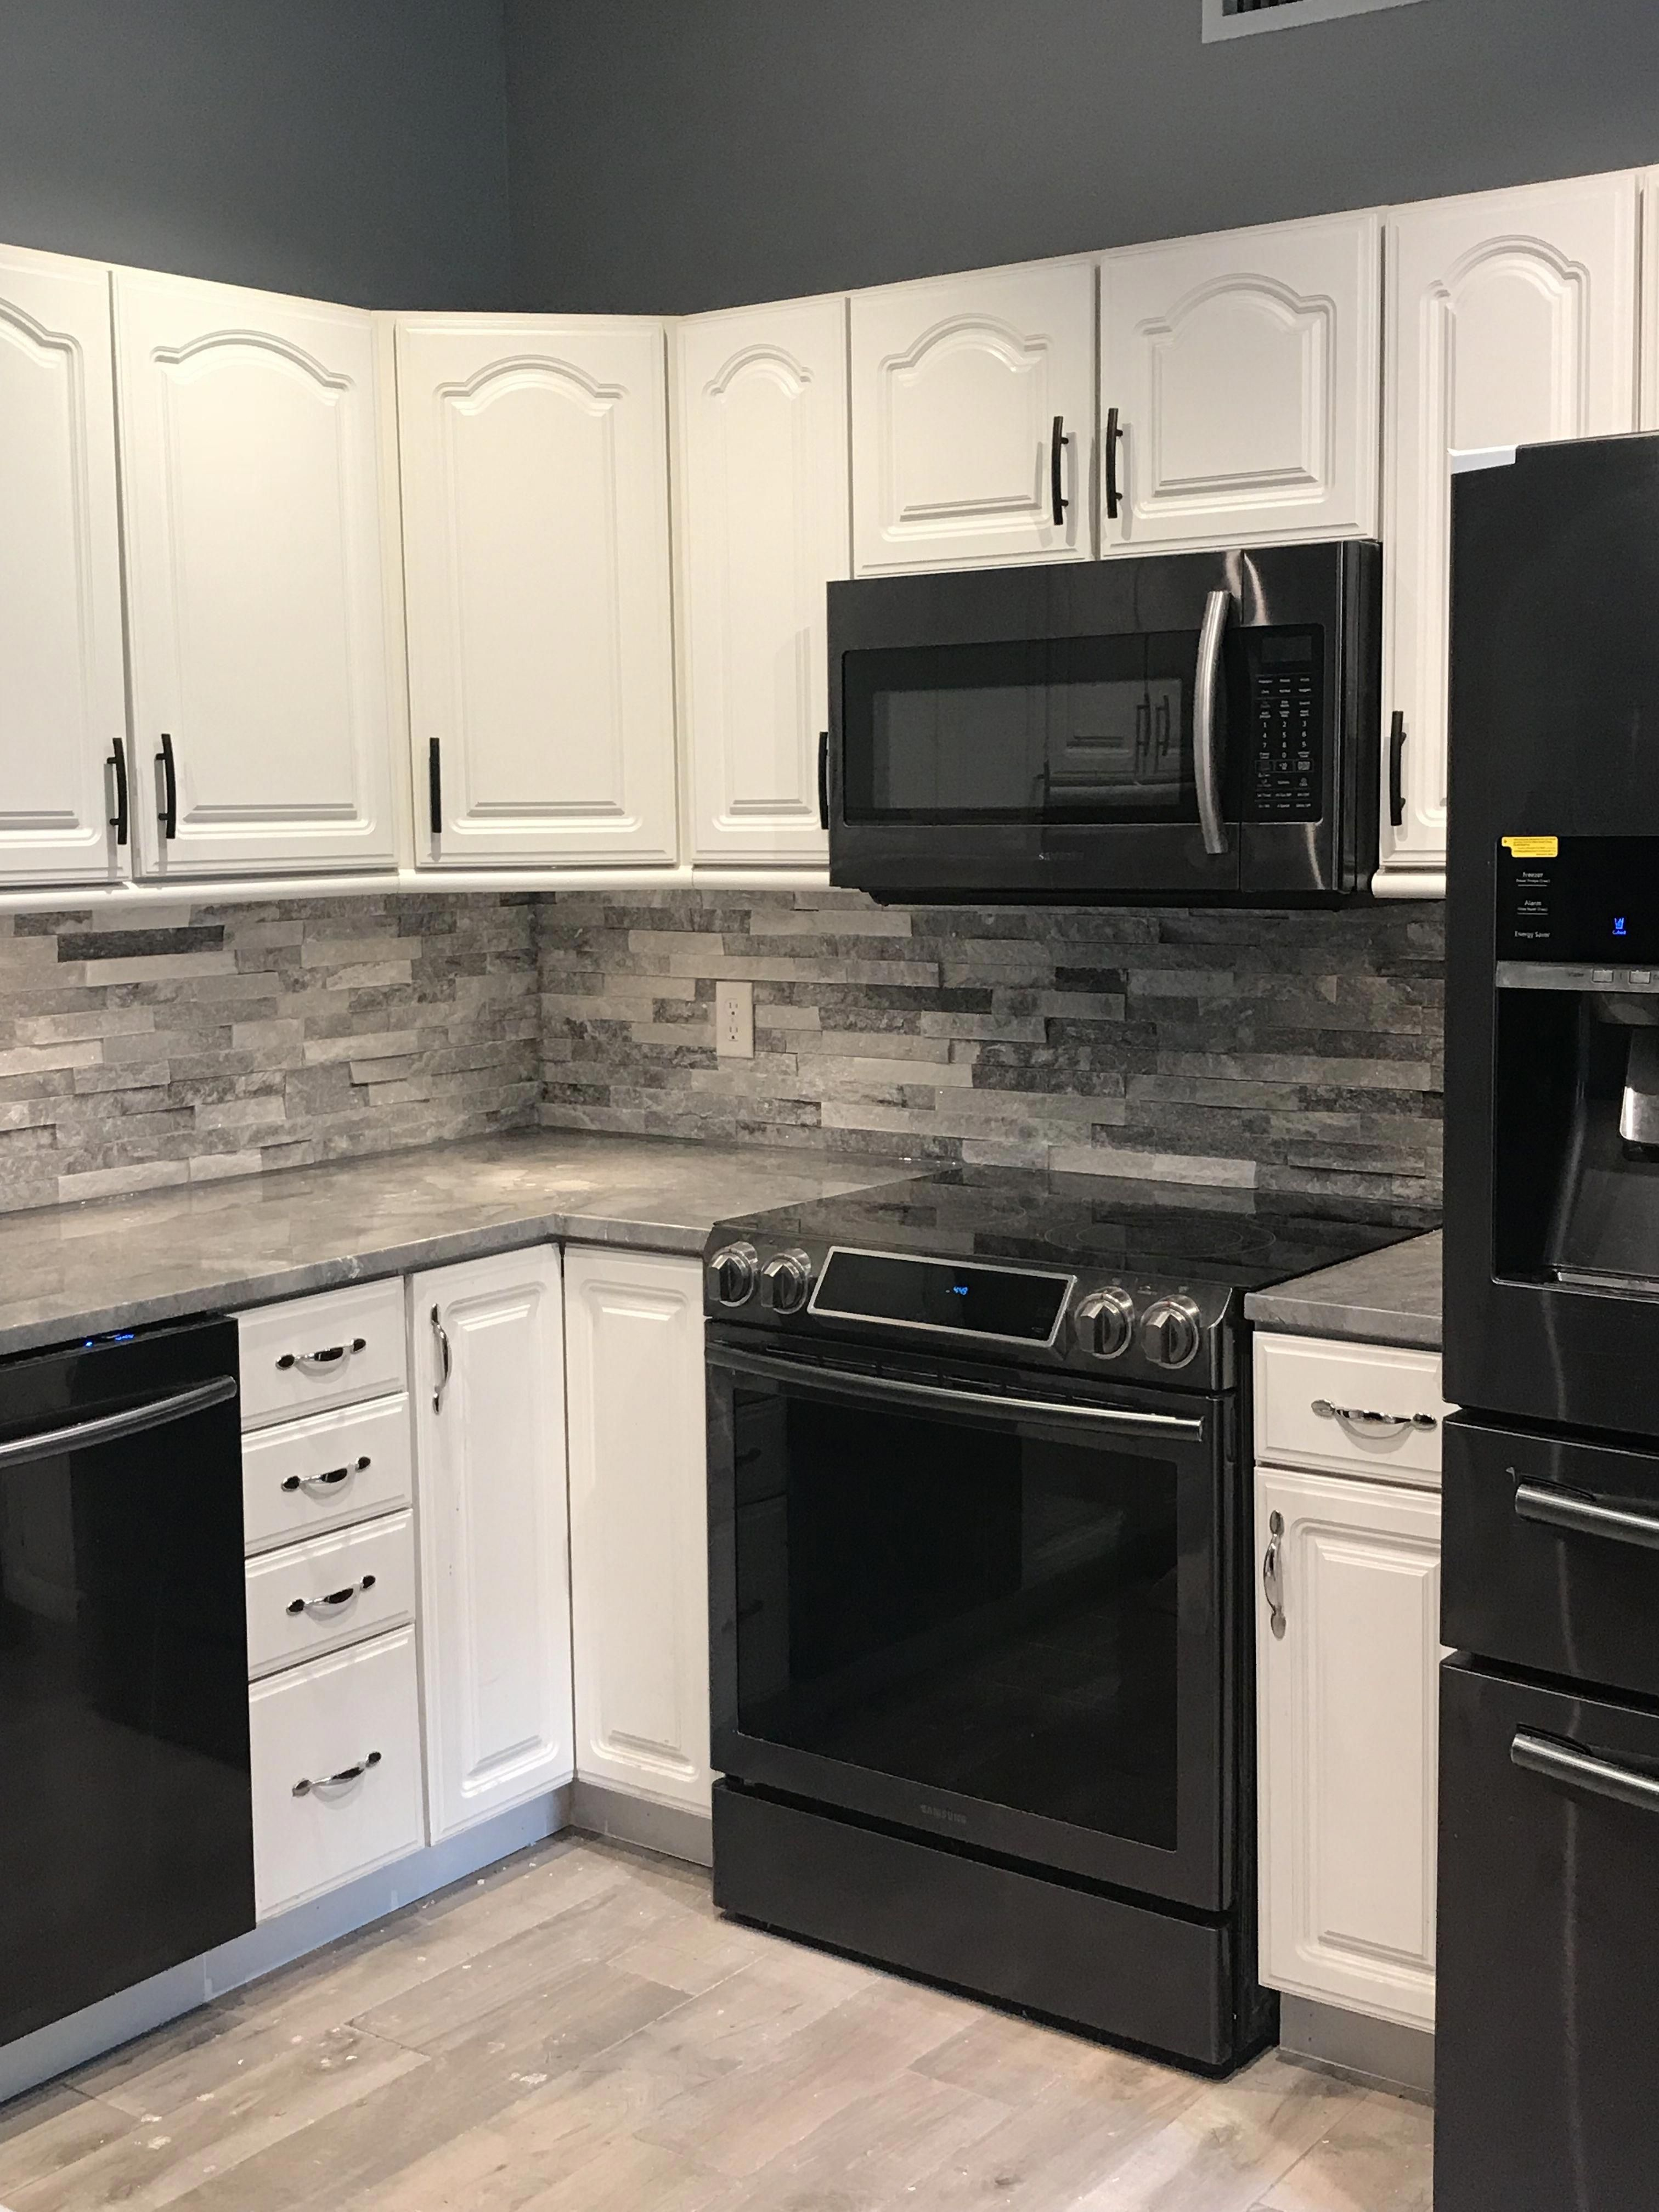 Stackstone Backsplash Black Stainless Appliances White Cabinets Grey Granite Don Concrete Countertops Kitchen Kitchen Color White Appliances White Cabinets